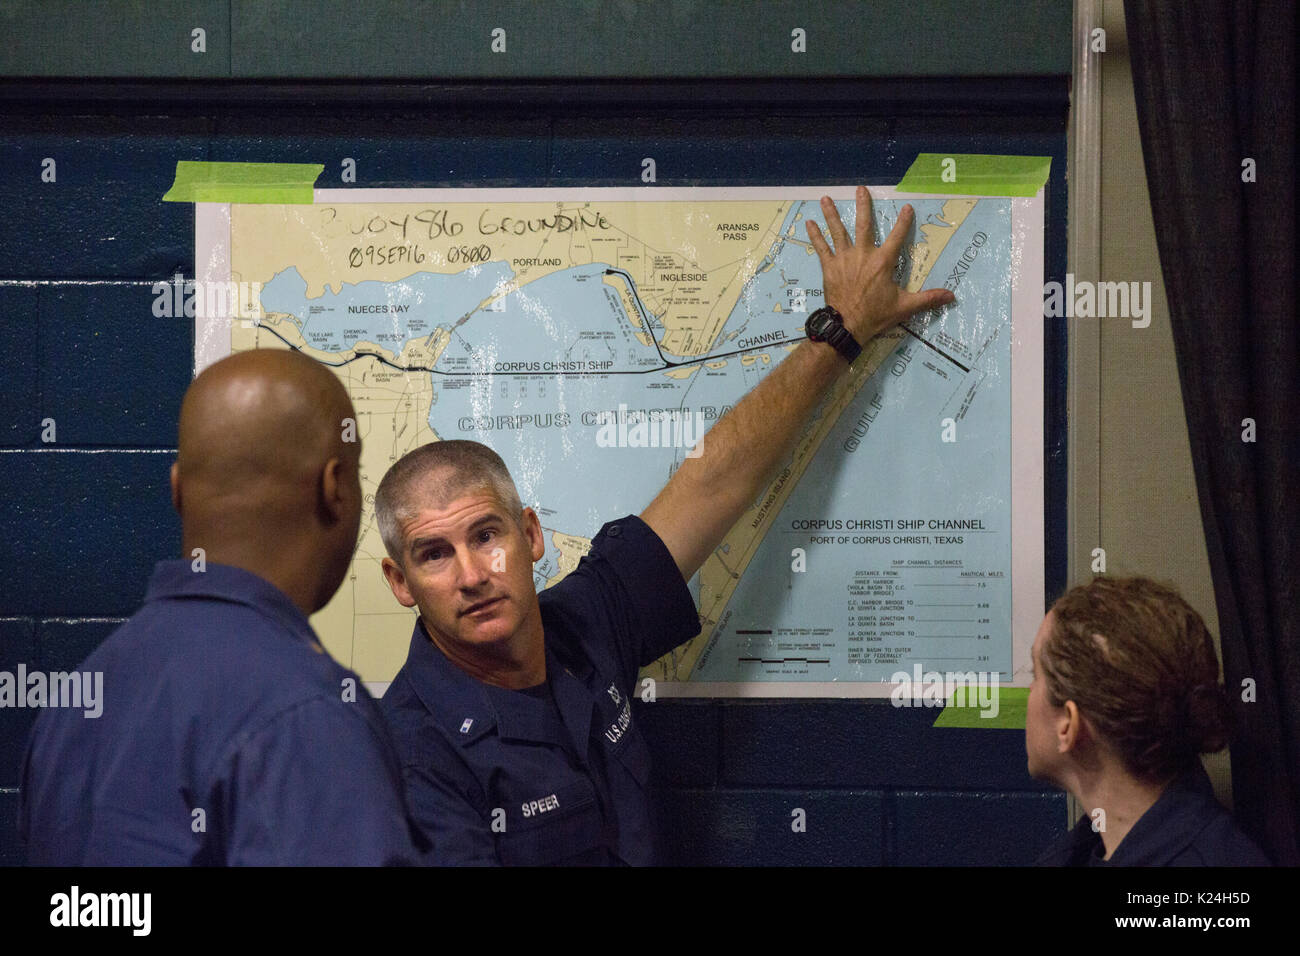 members of the u s coast guard reference a map of the corpus christi area during search and rescue planning august 27 2016 in robstown texas